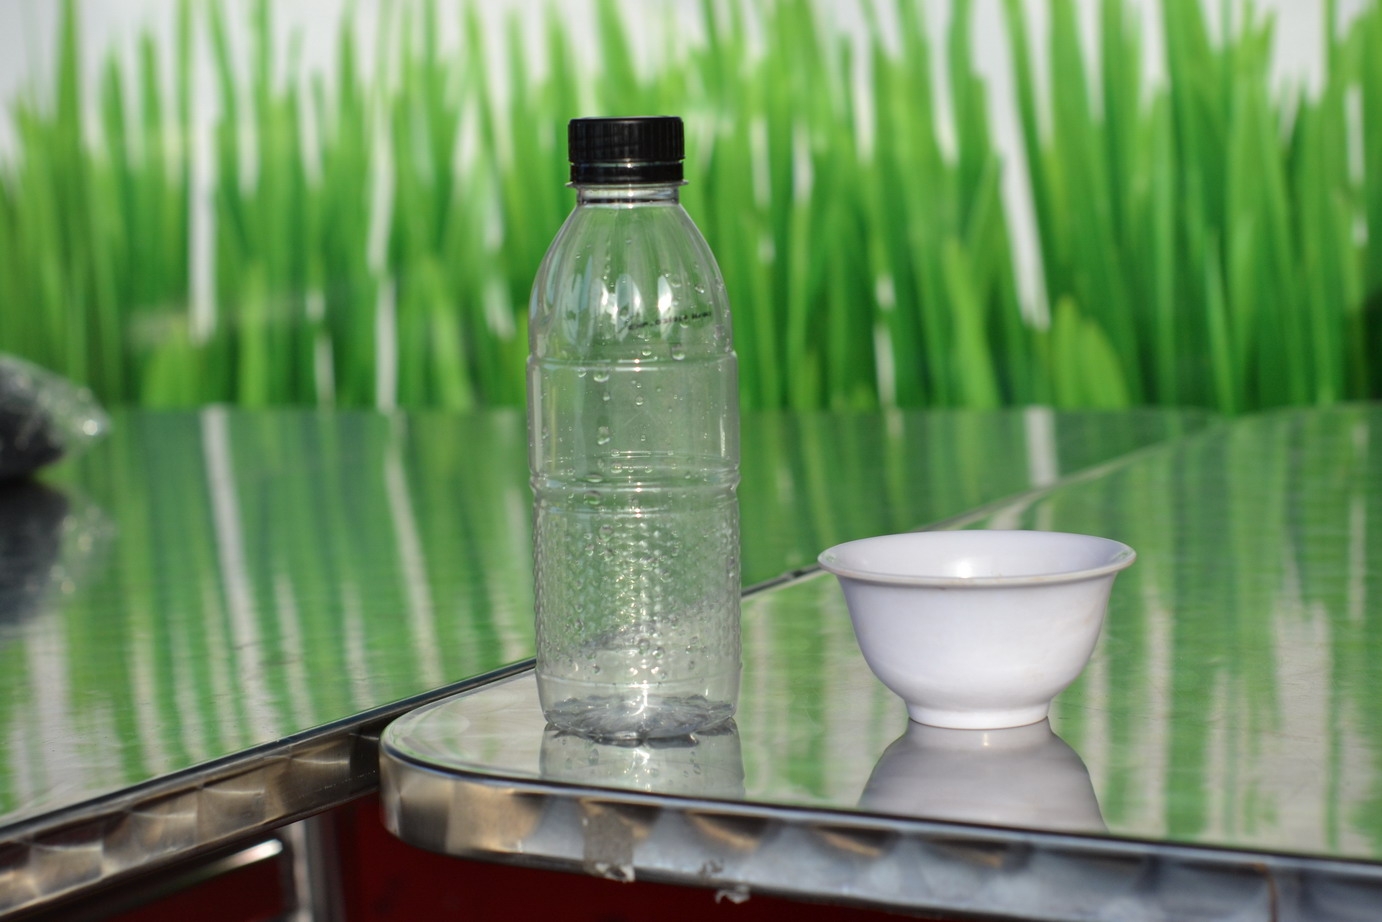 Water Bottle and A Bowl, Bottle, Bowl, Drink, Food, HQ Photo